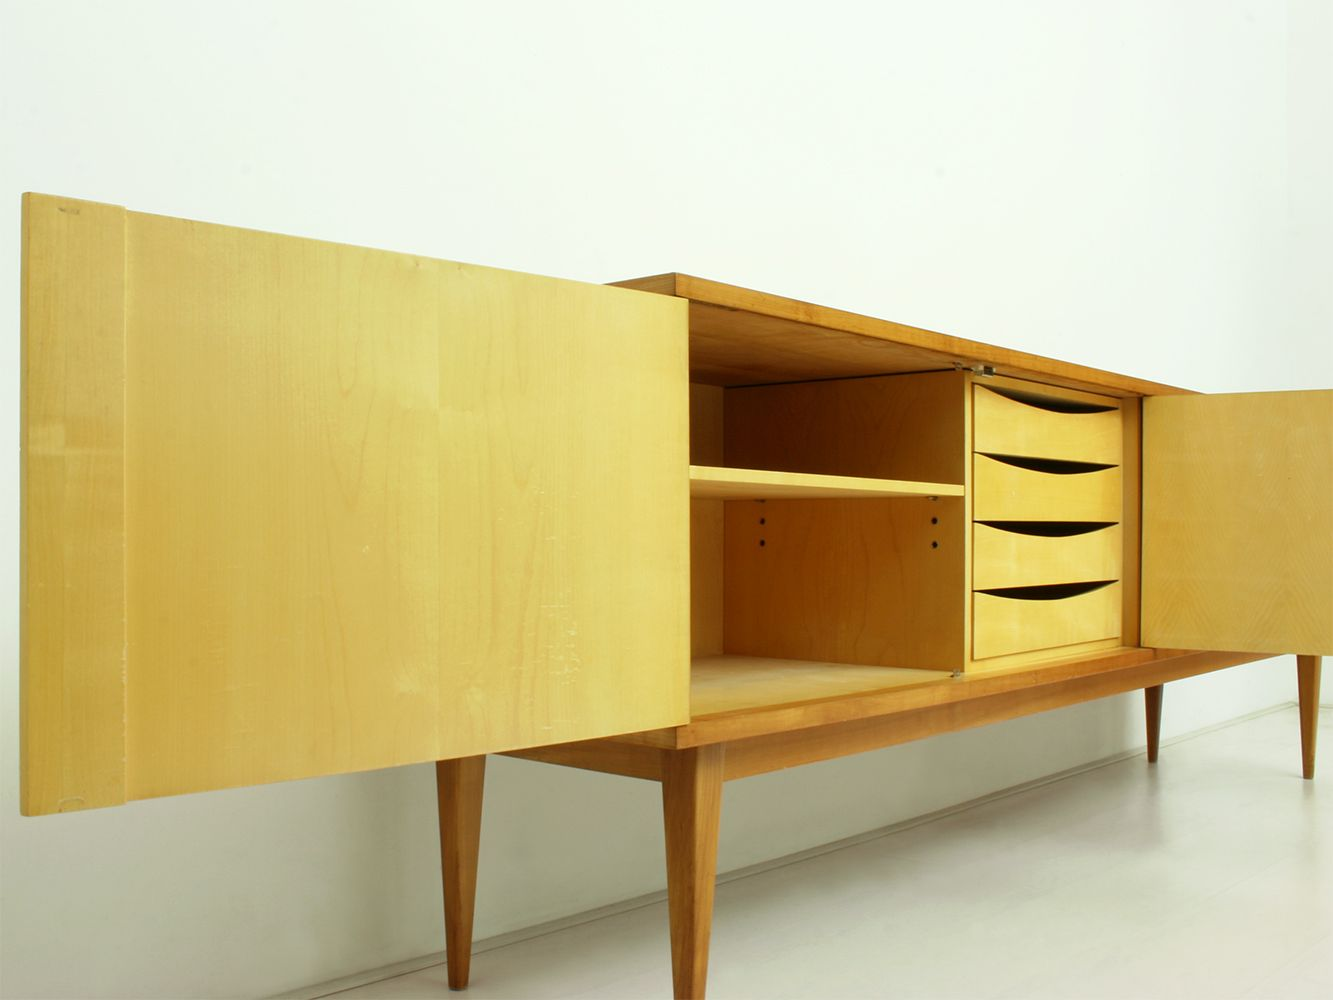 german cherrywood sideboard by wolfgang weber for wk m bel 1962 for sale at pamono. Black Bedroom Furniture Sets. Home Design Ideas